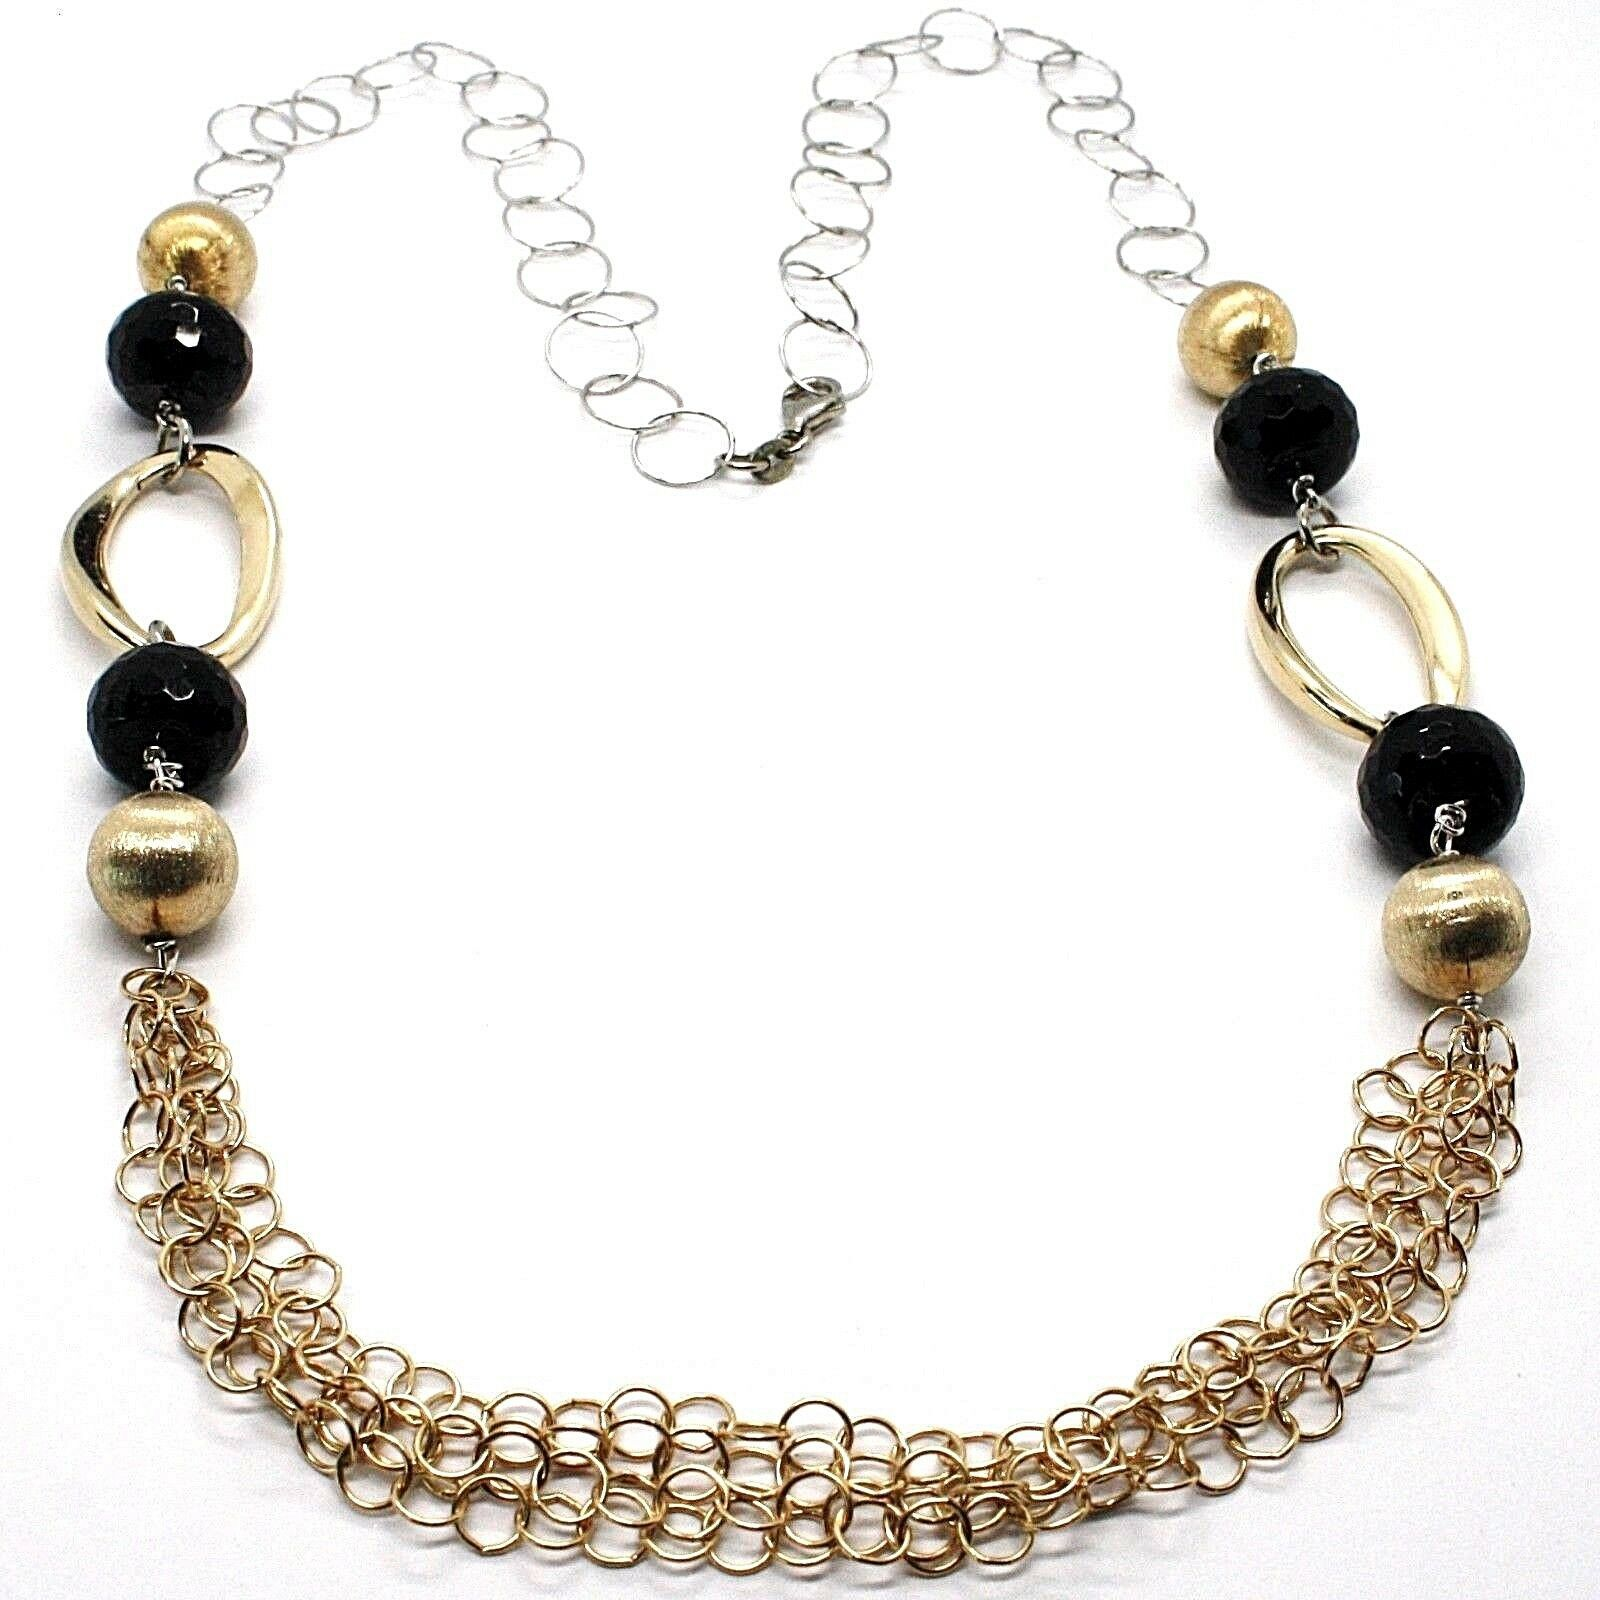 Silver 925 Necklace, Onyx, Oval Wavy, Balls Satin Rolo Chain